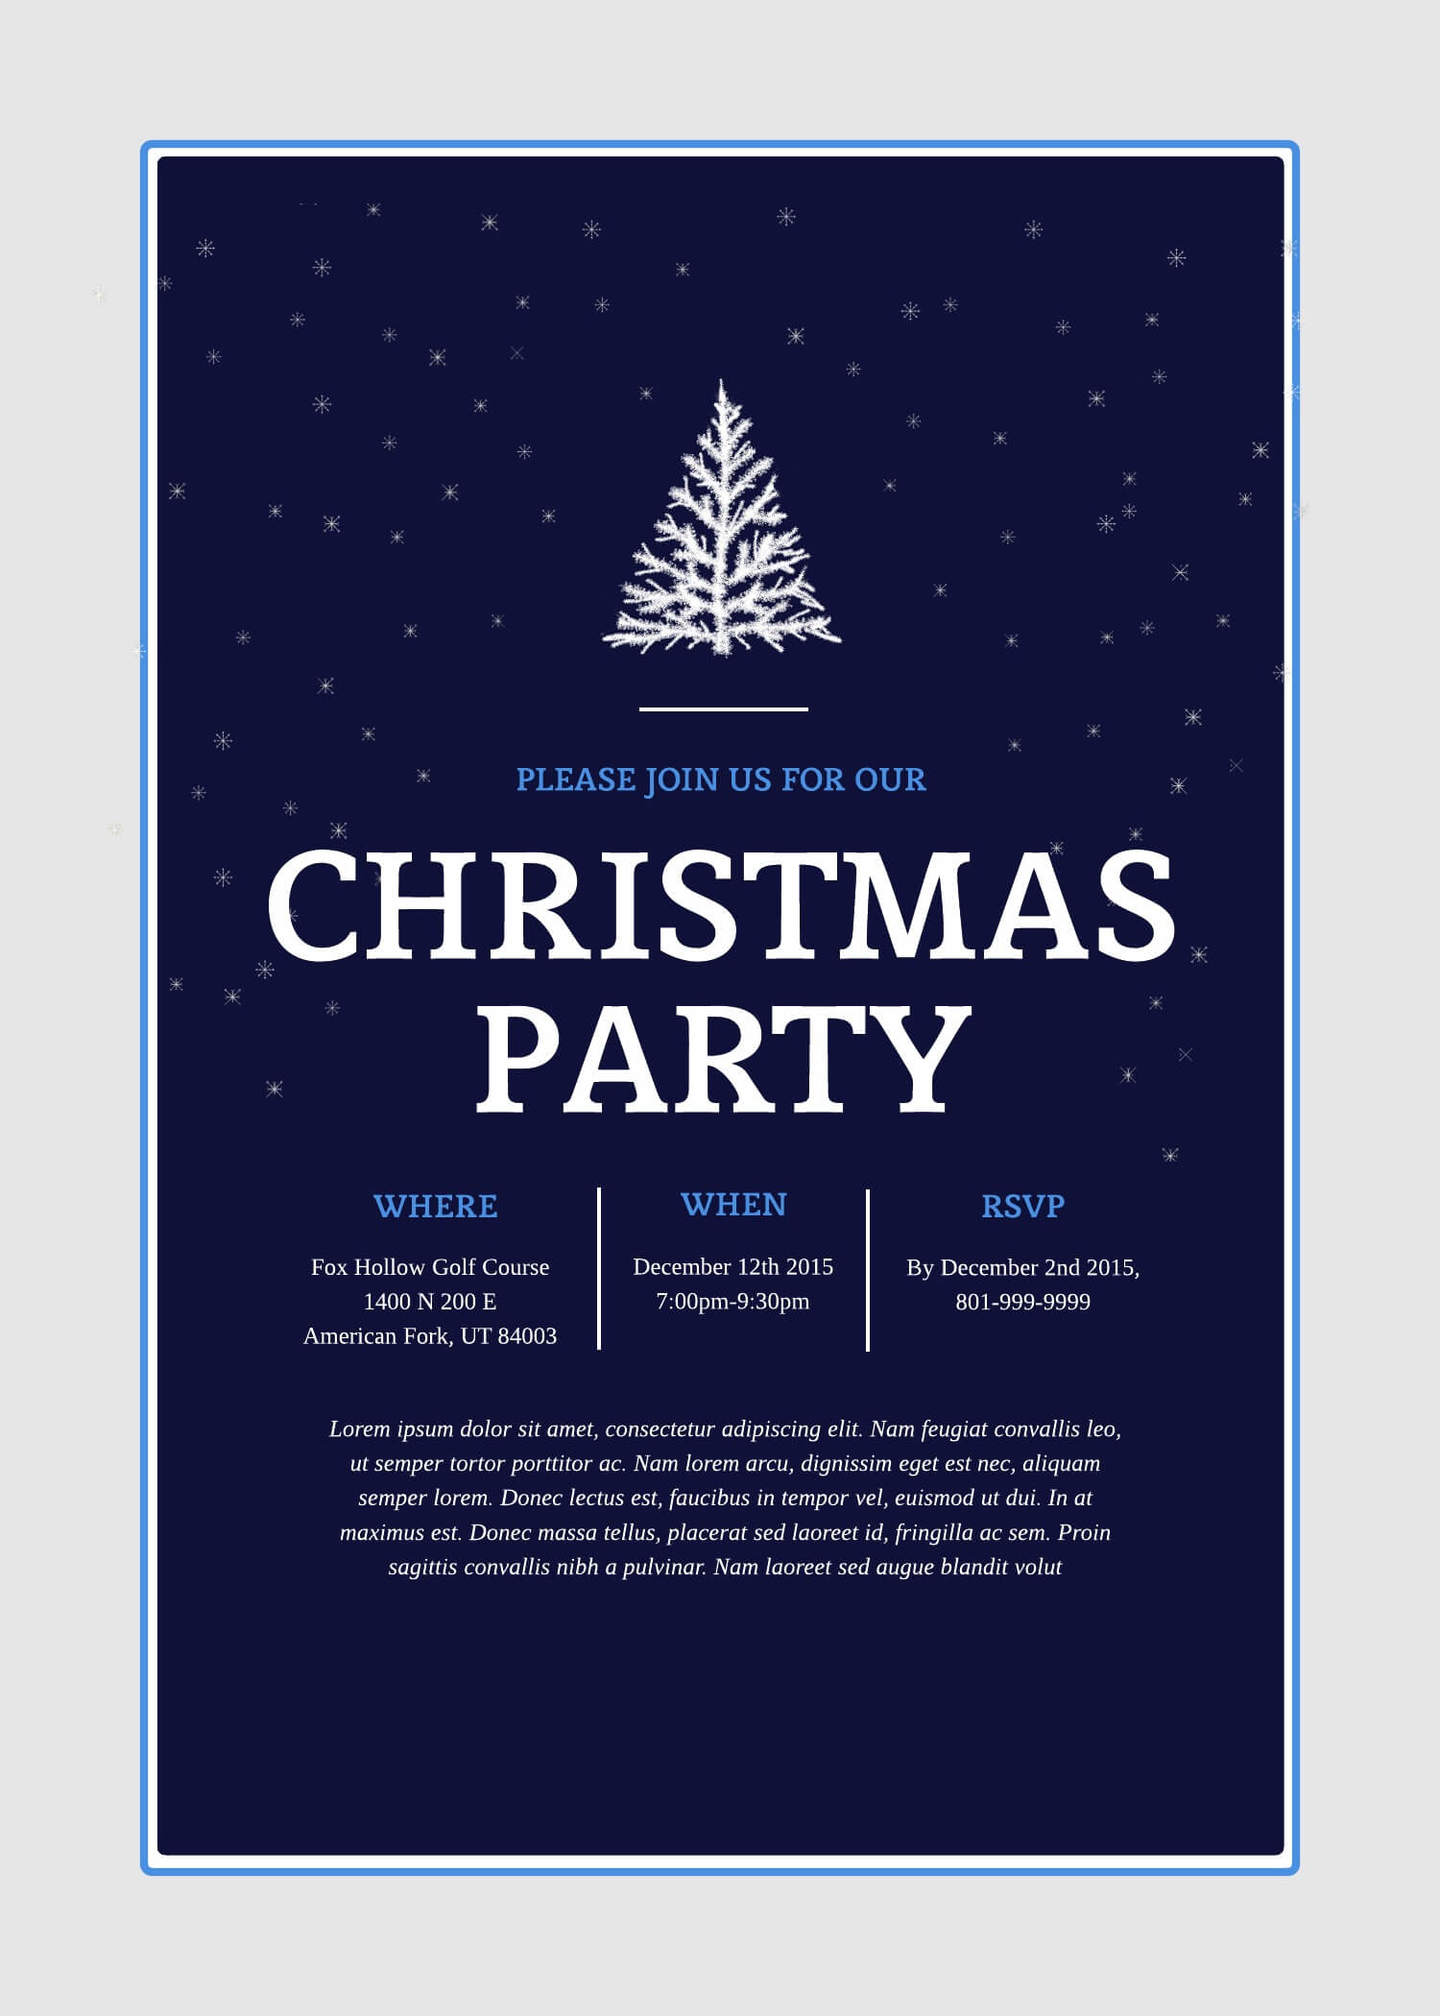 Christmas Holiday Party Invitation (5x7)  Free Christmas Party Templates Invitations